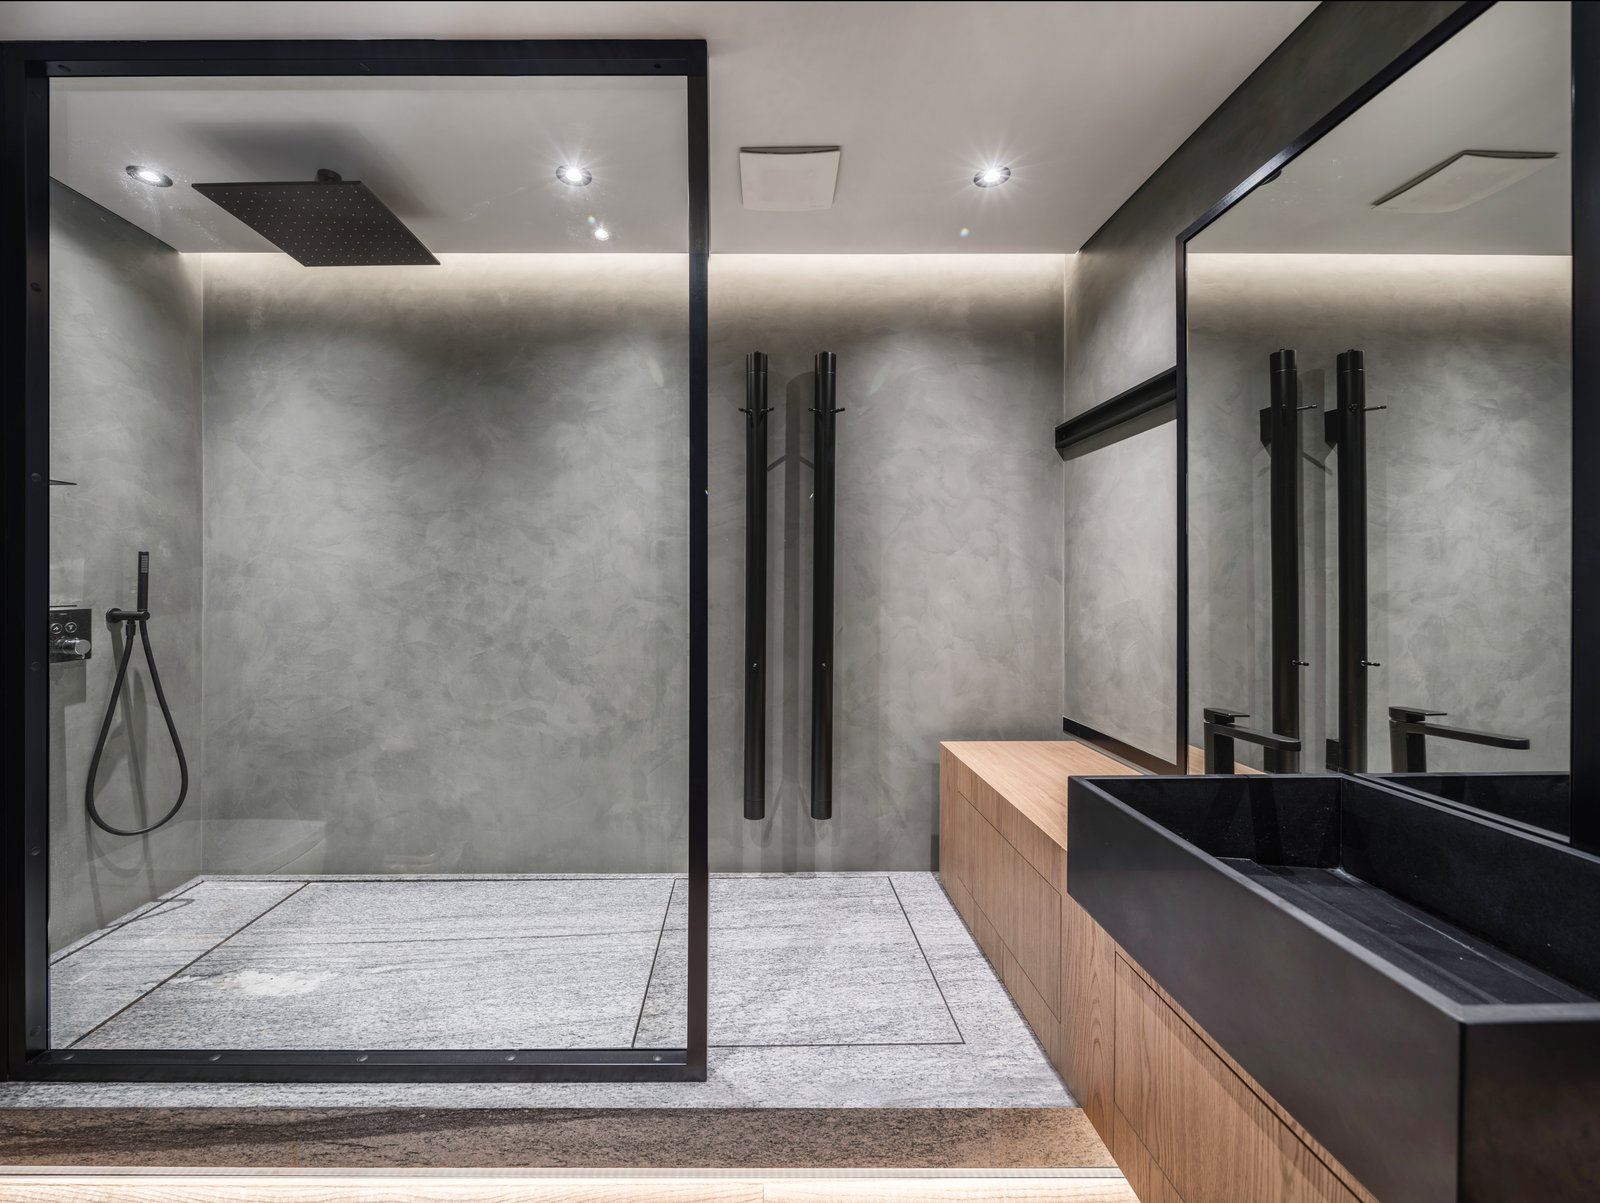 Bath, Vessel, Recessed, Wood, Slate, Open, Enclosed, Full, and Concrete The glass dividers in the bathroom are hand-crafted by Ukrainian craftsmen.  Best Bath Wood Recessed Full Photos from A Monochromatic Palette Unifies Old and New in This Ukrainian Bachelor Pad